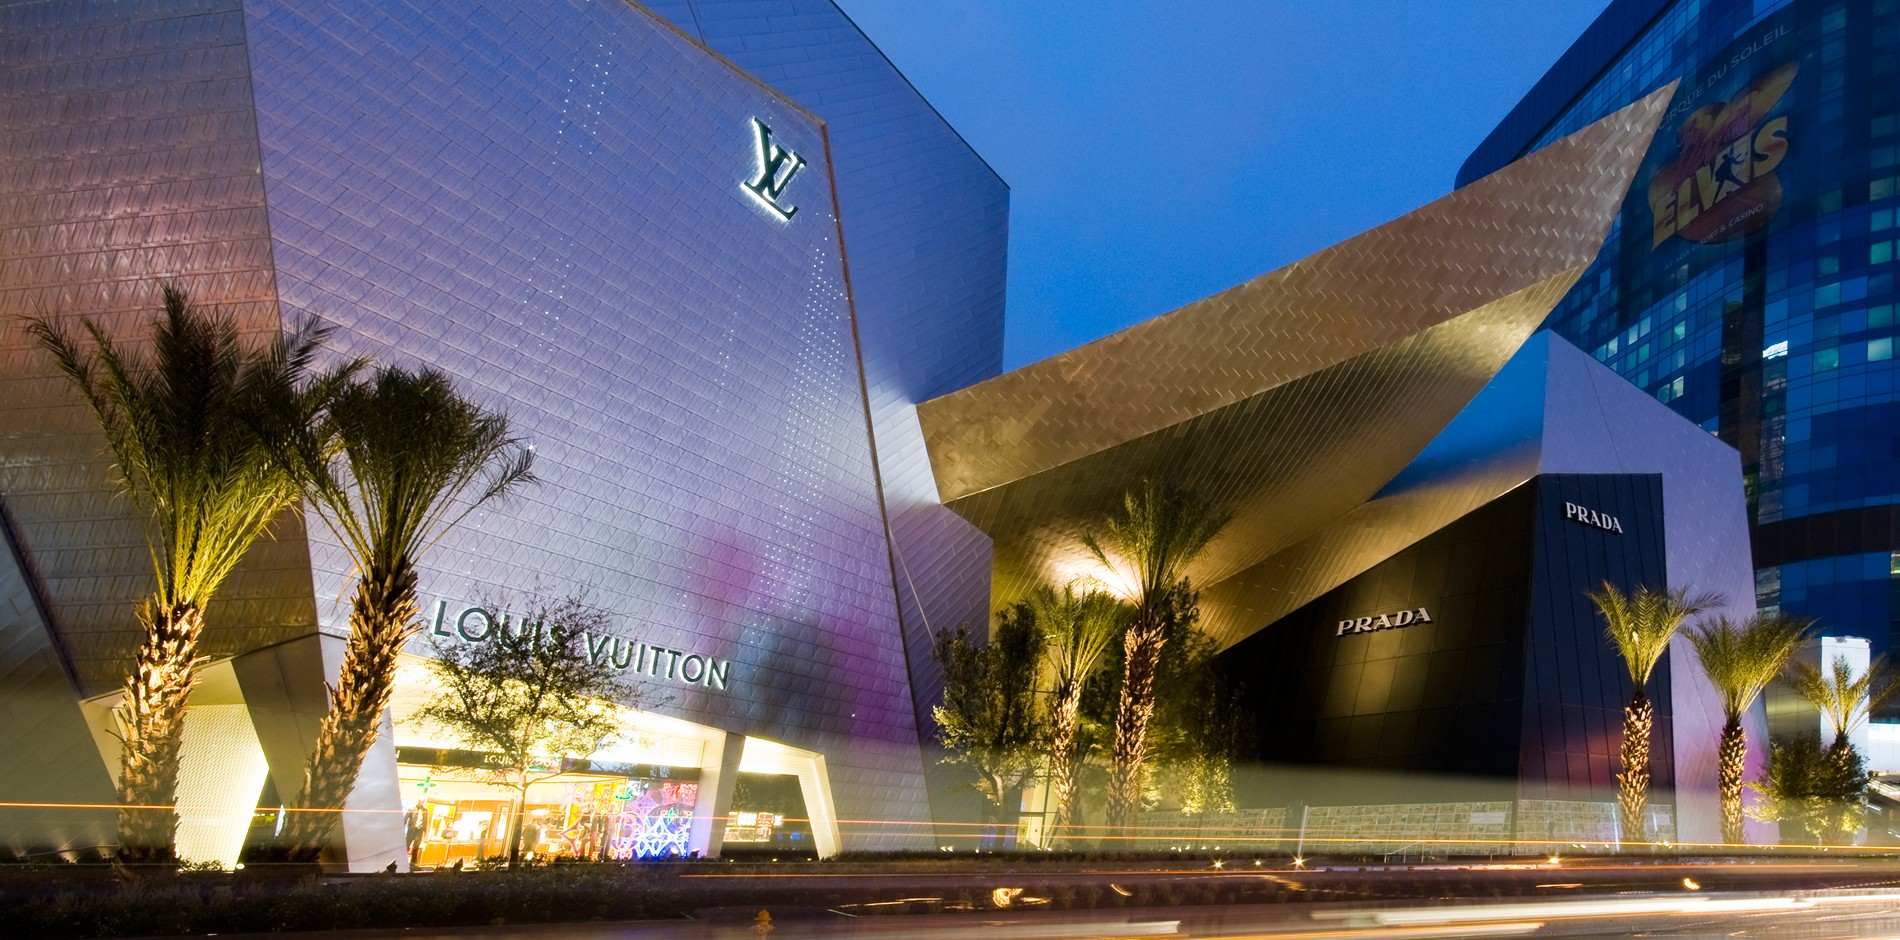 Louis Vuitton Las Vegas Luxury Retail Store Construction Management